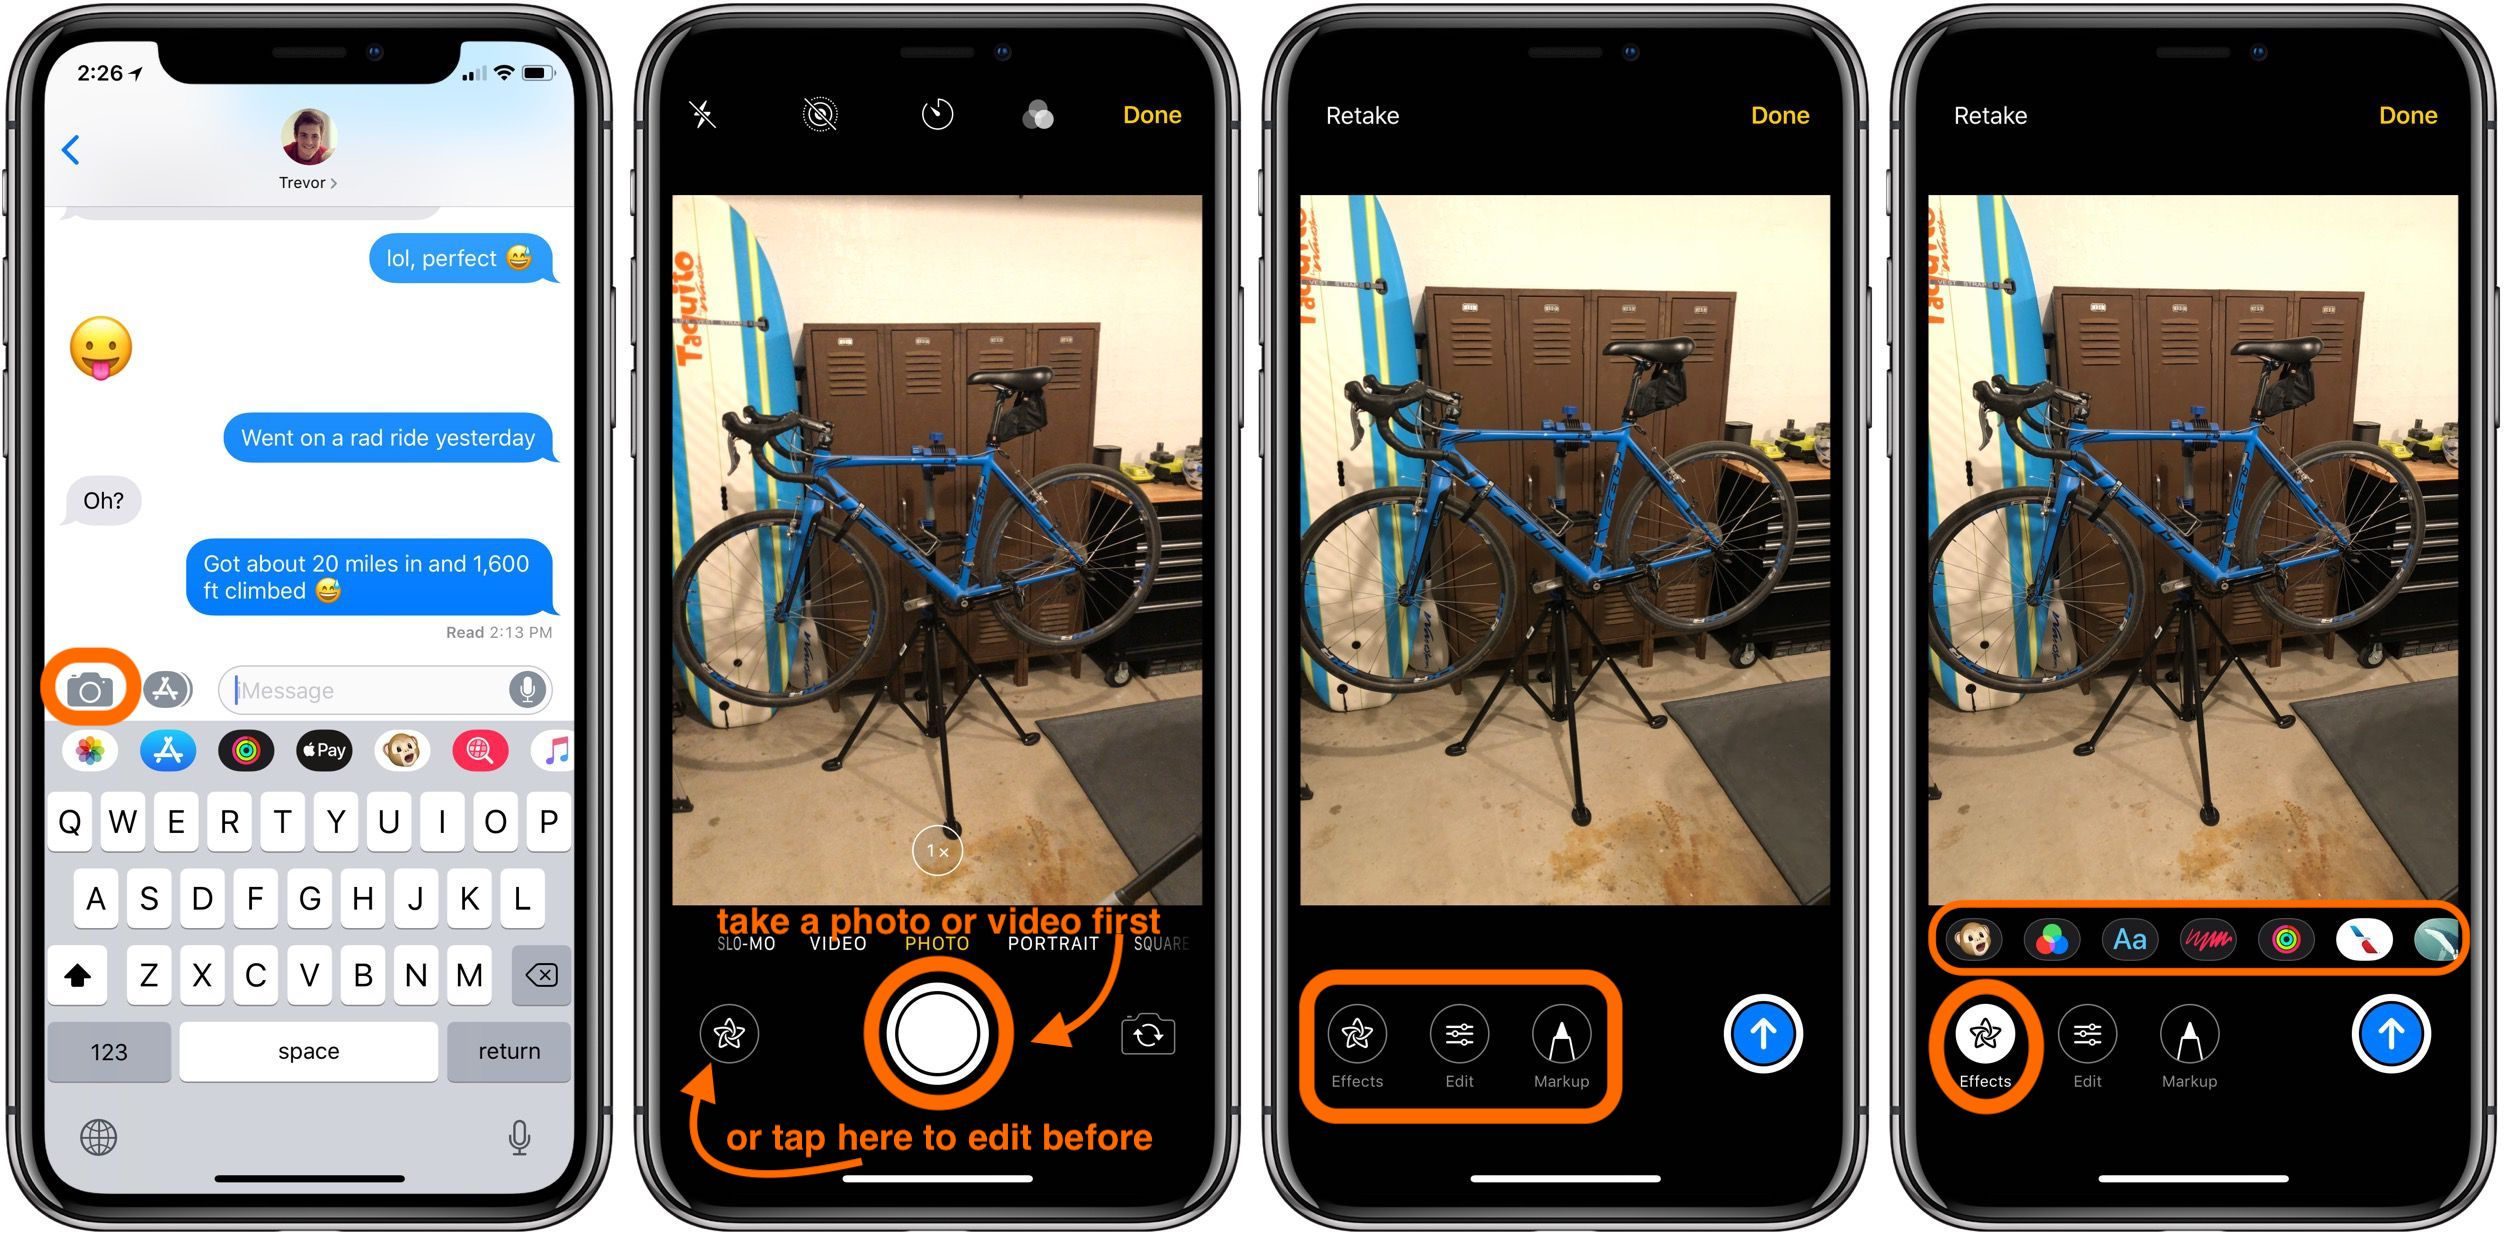 How to Use Panorama Camera on iPhone to